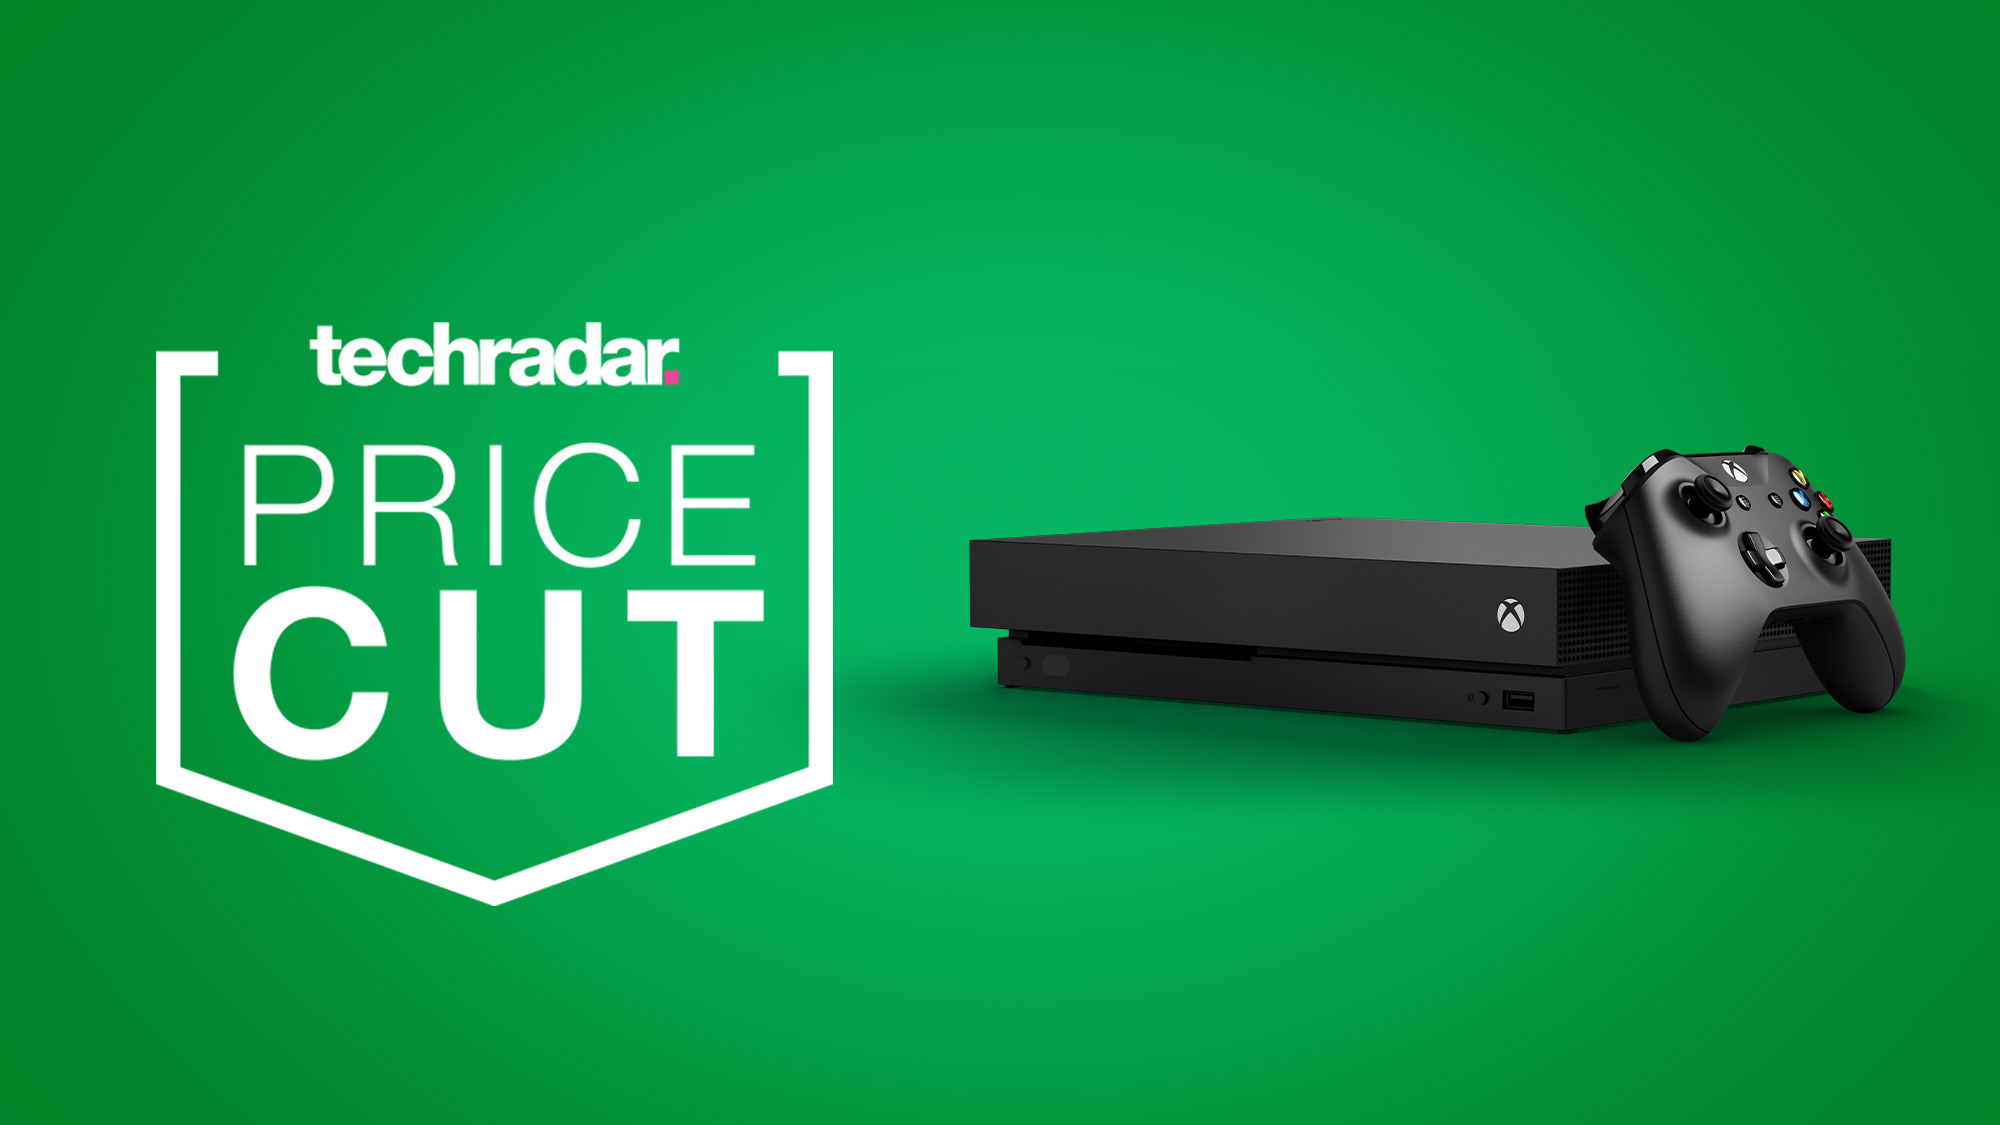 There's still time to grab a cheap Xbox One X deal with further price drops this week